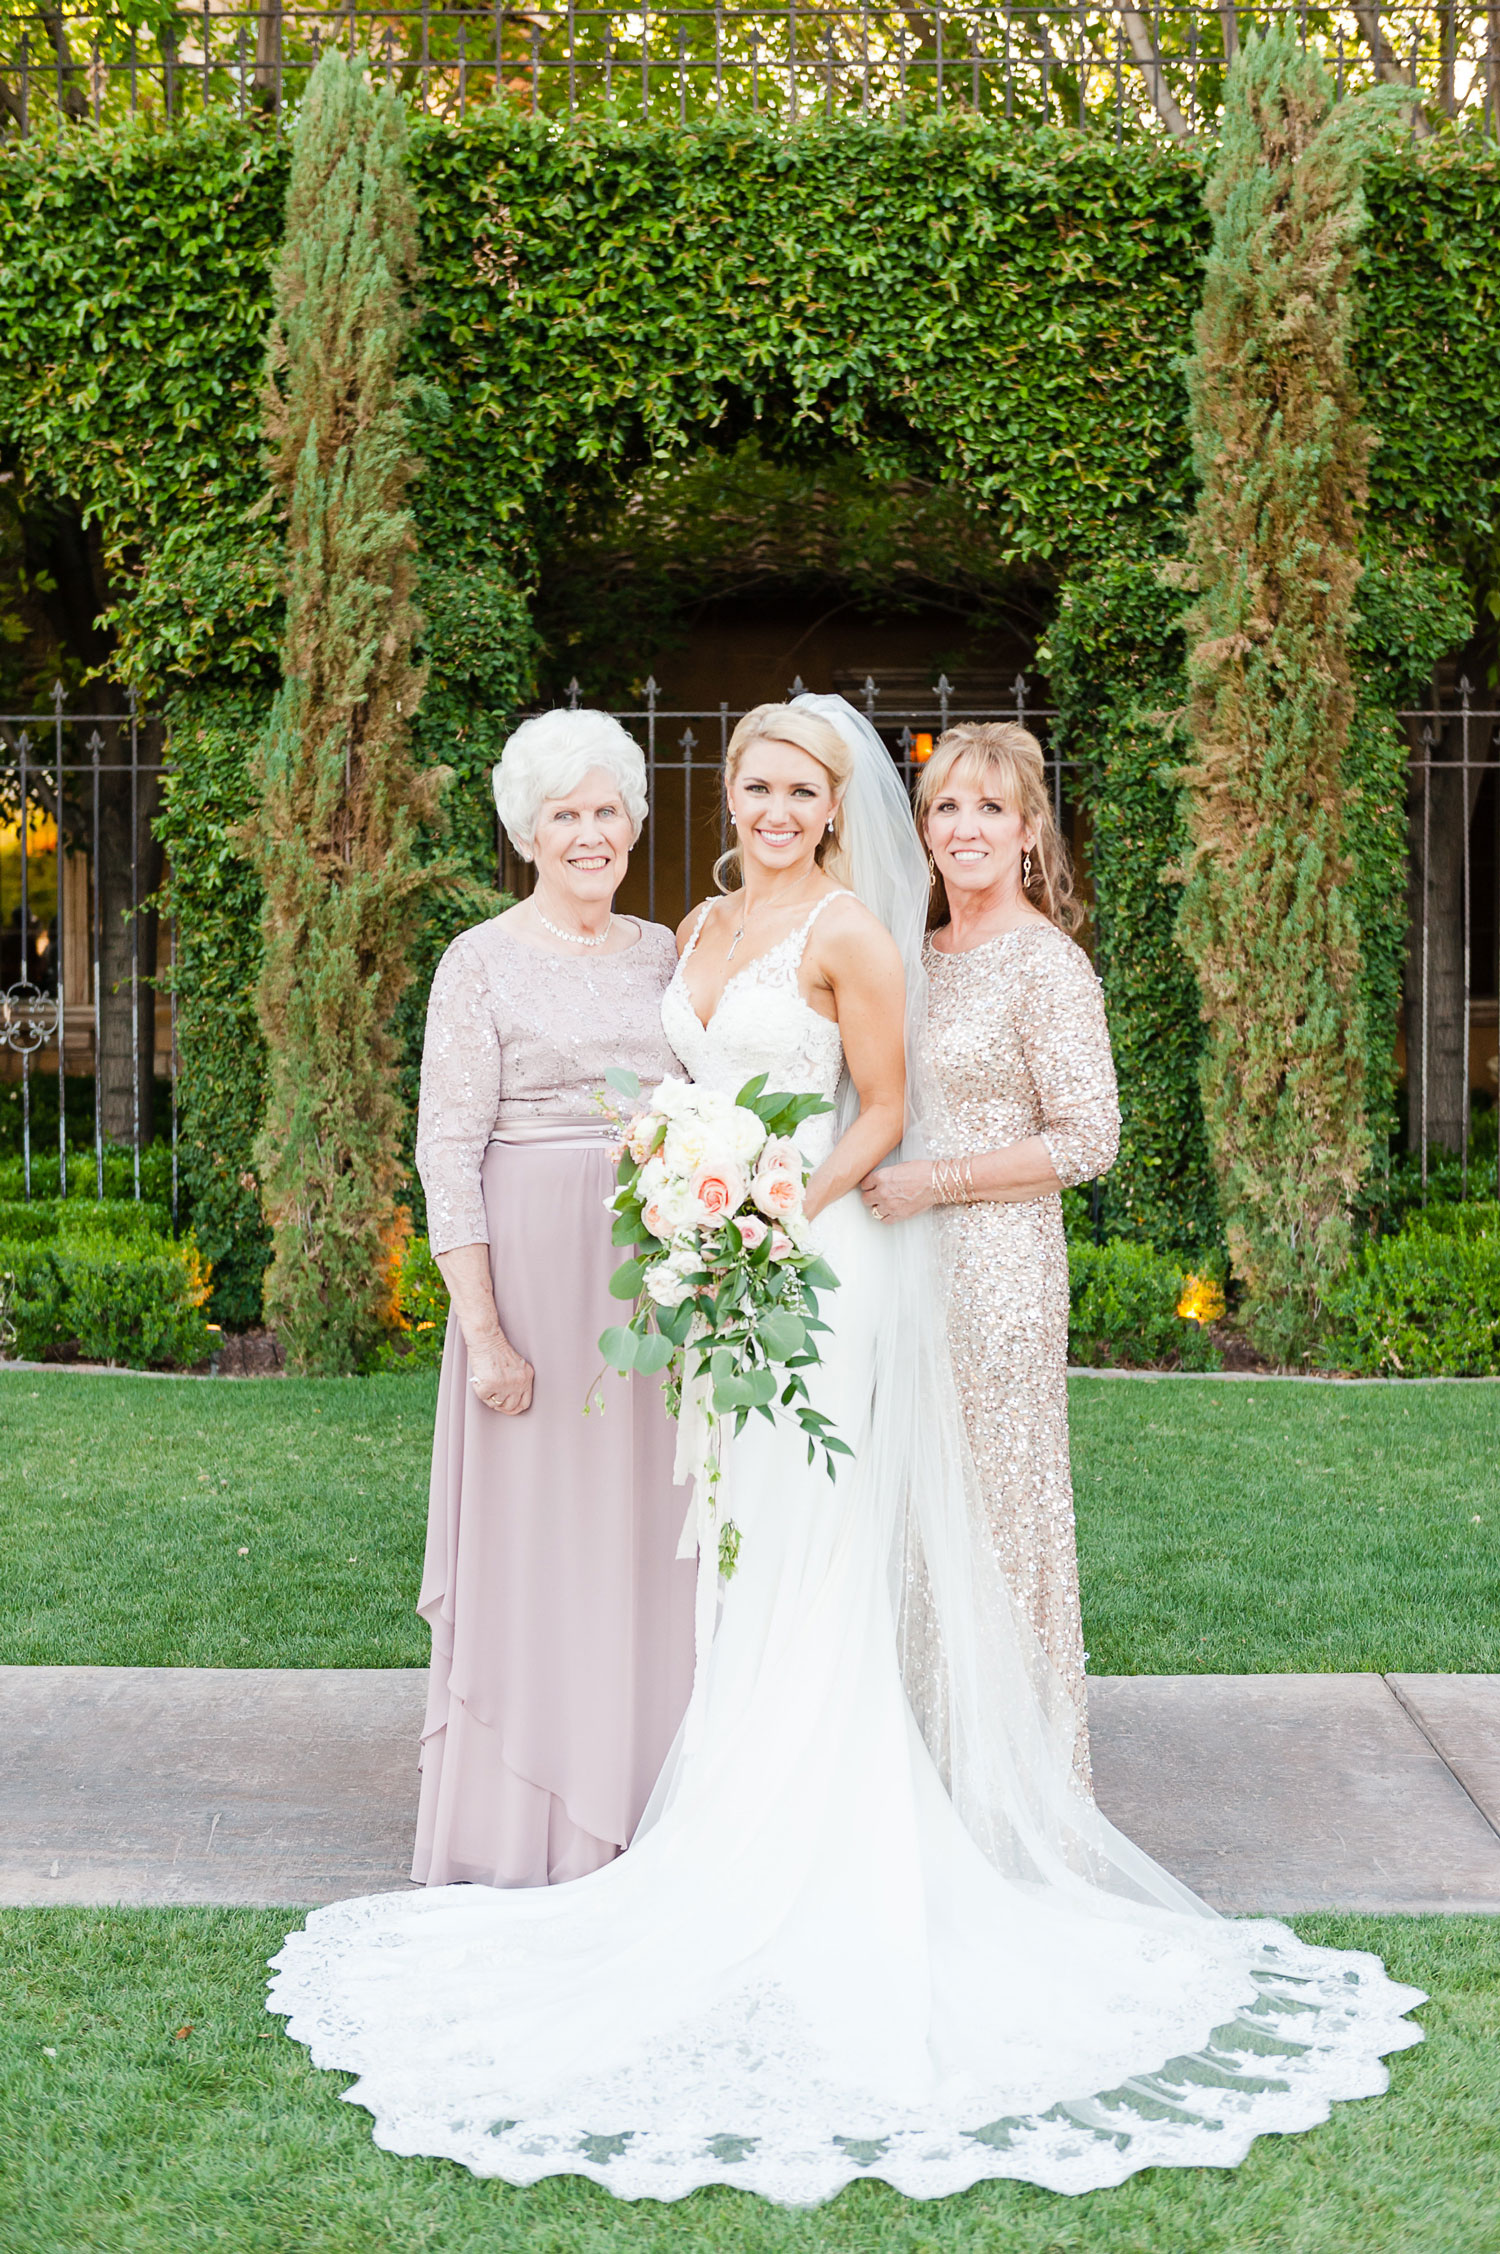 Bride with mother and grandmother three generation wedding photo